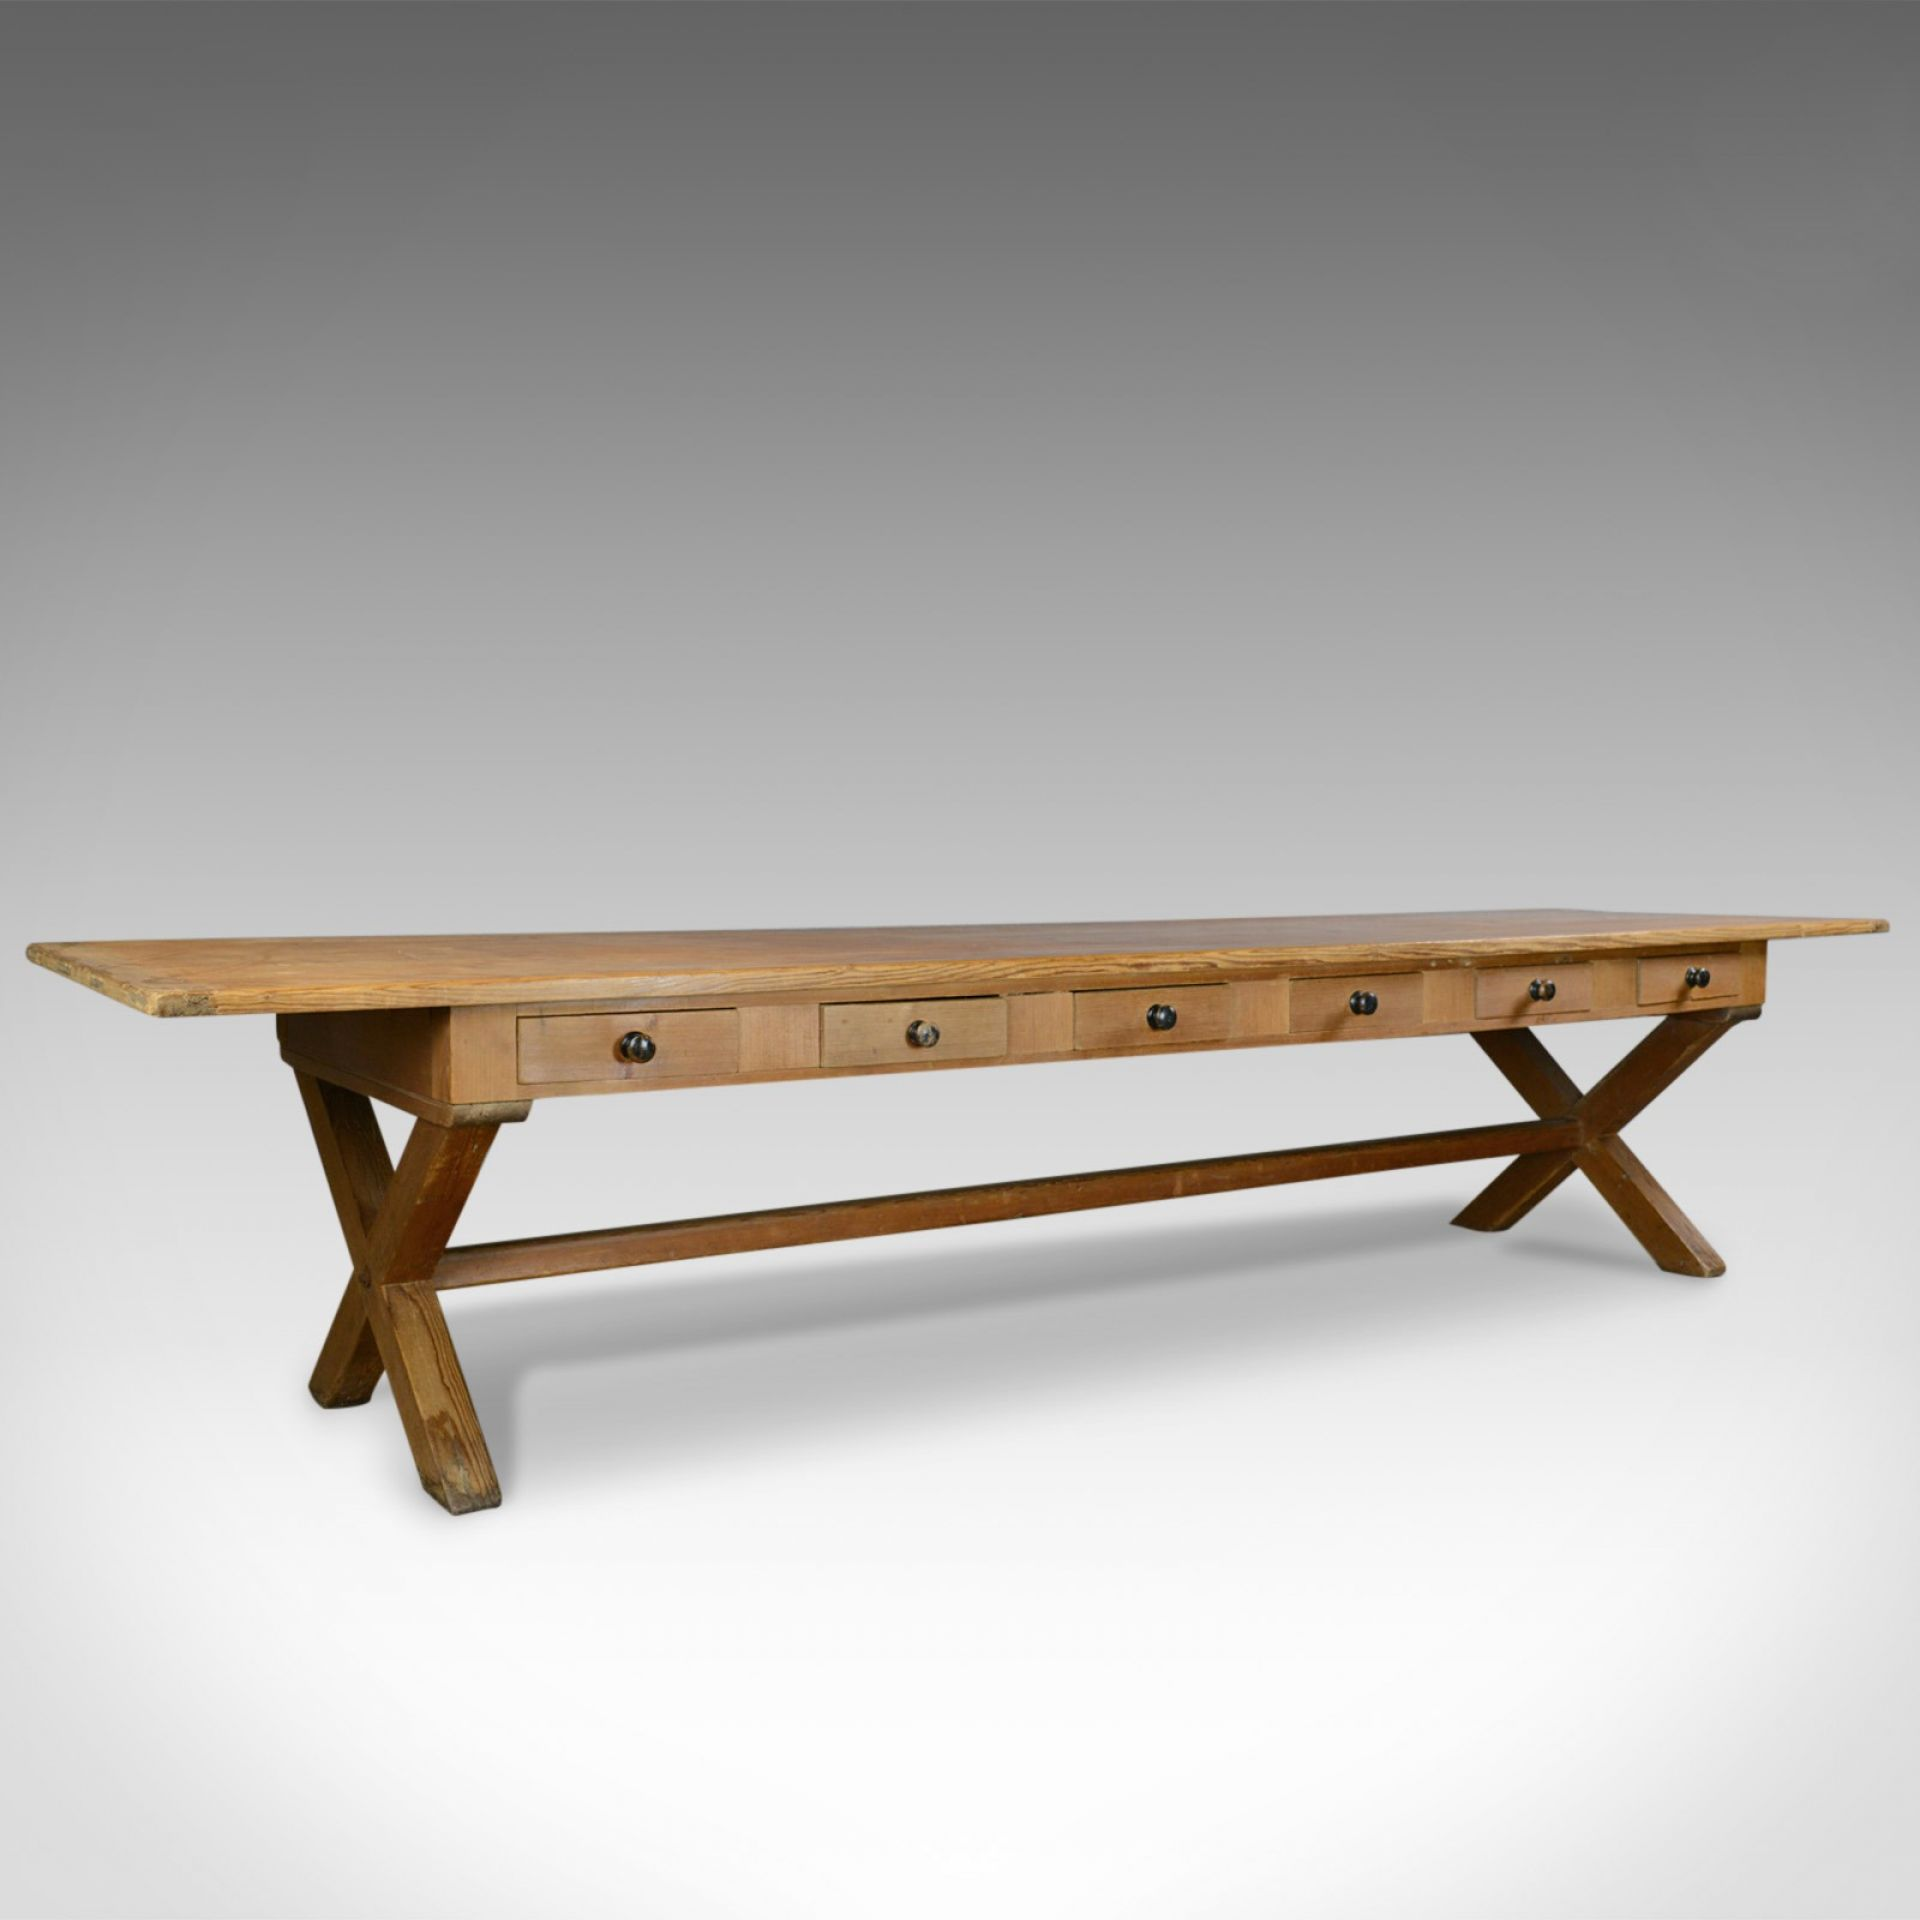 Large, 11ft, Antique Pine Refectory Table, Victorian Dining, Country House c1880